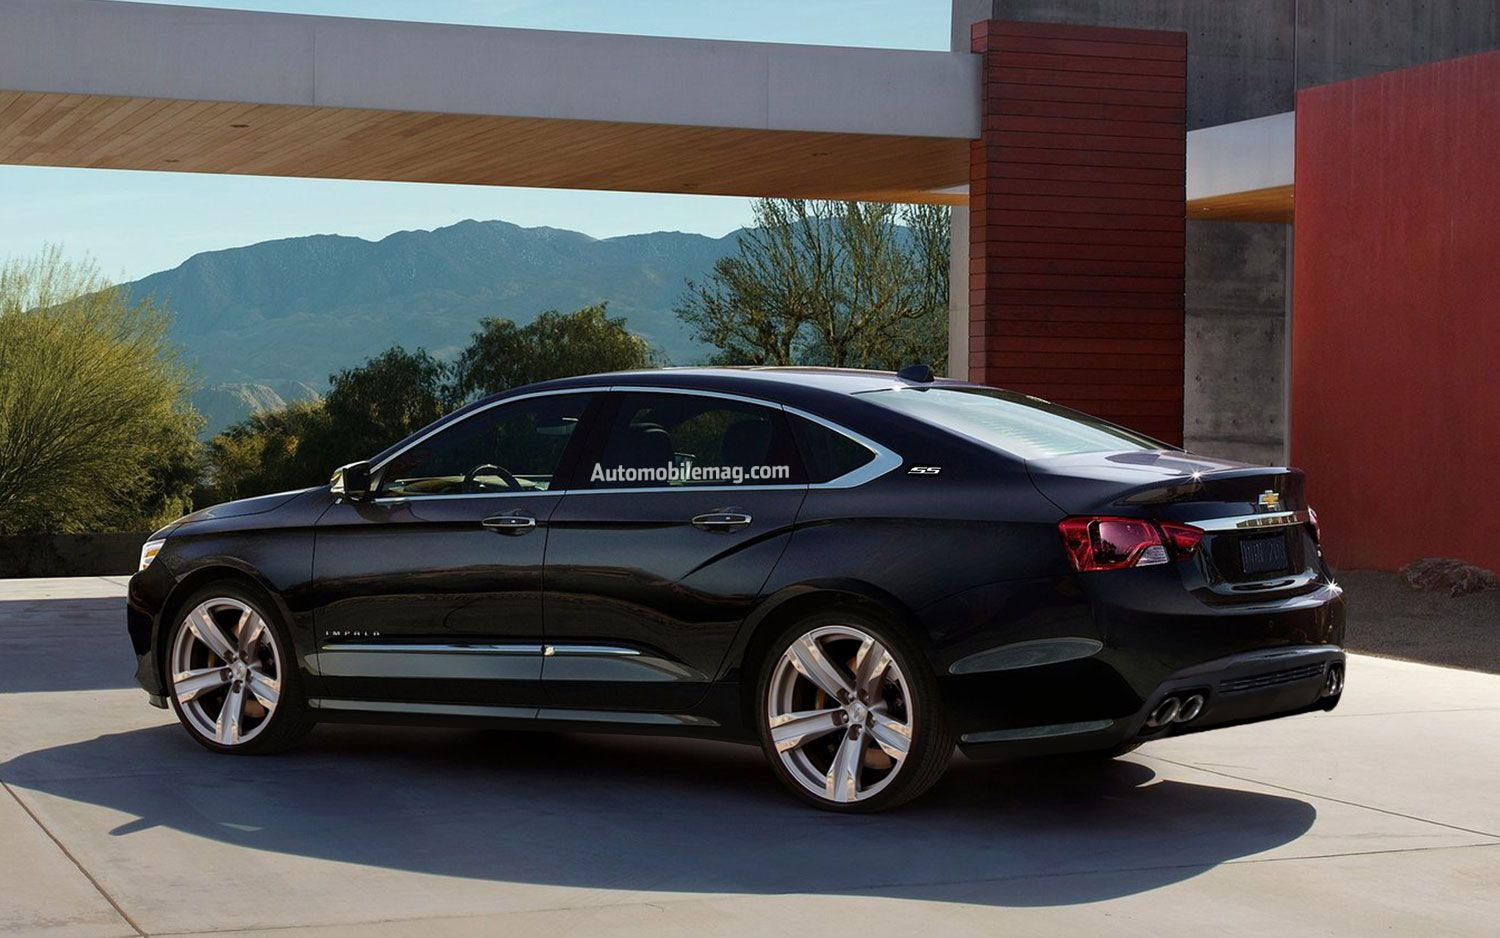 small resolution of chevy impala ss rendering rear amag photo on april 23 2012